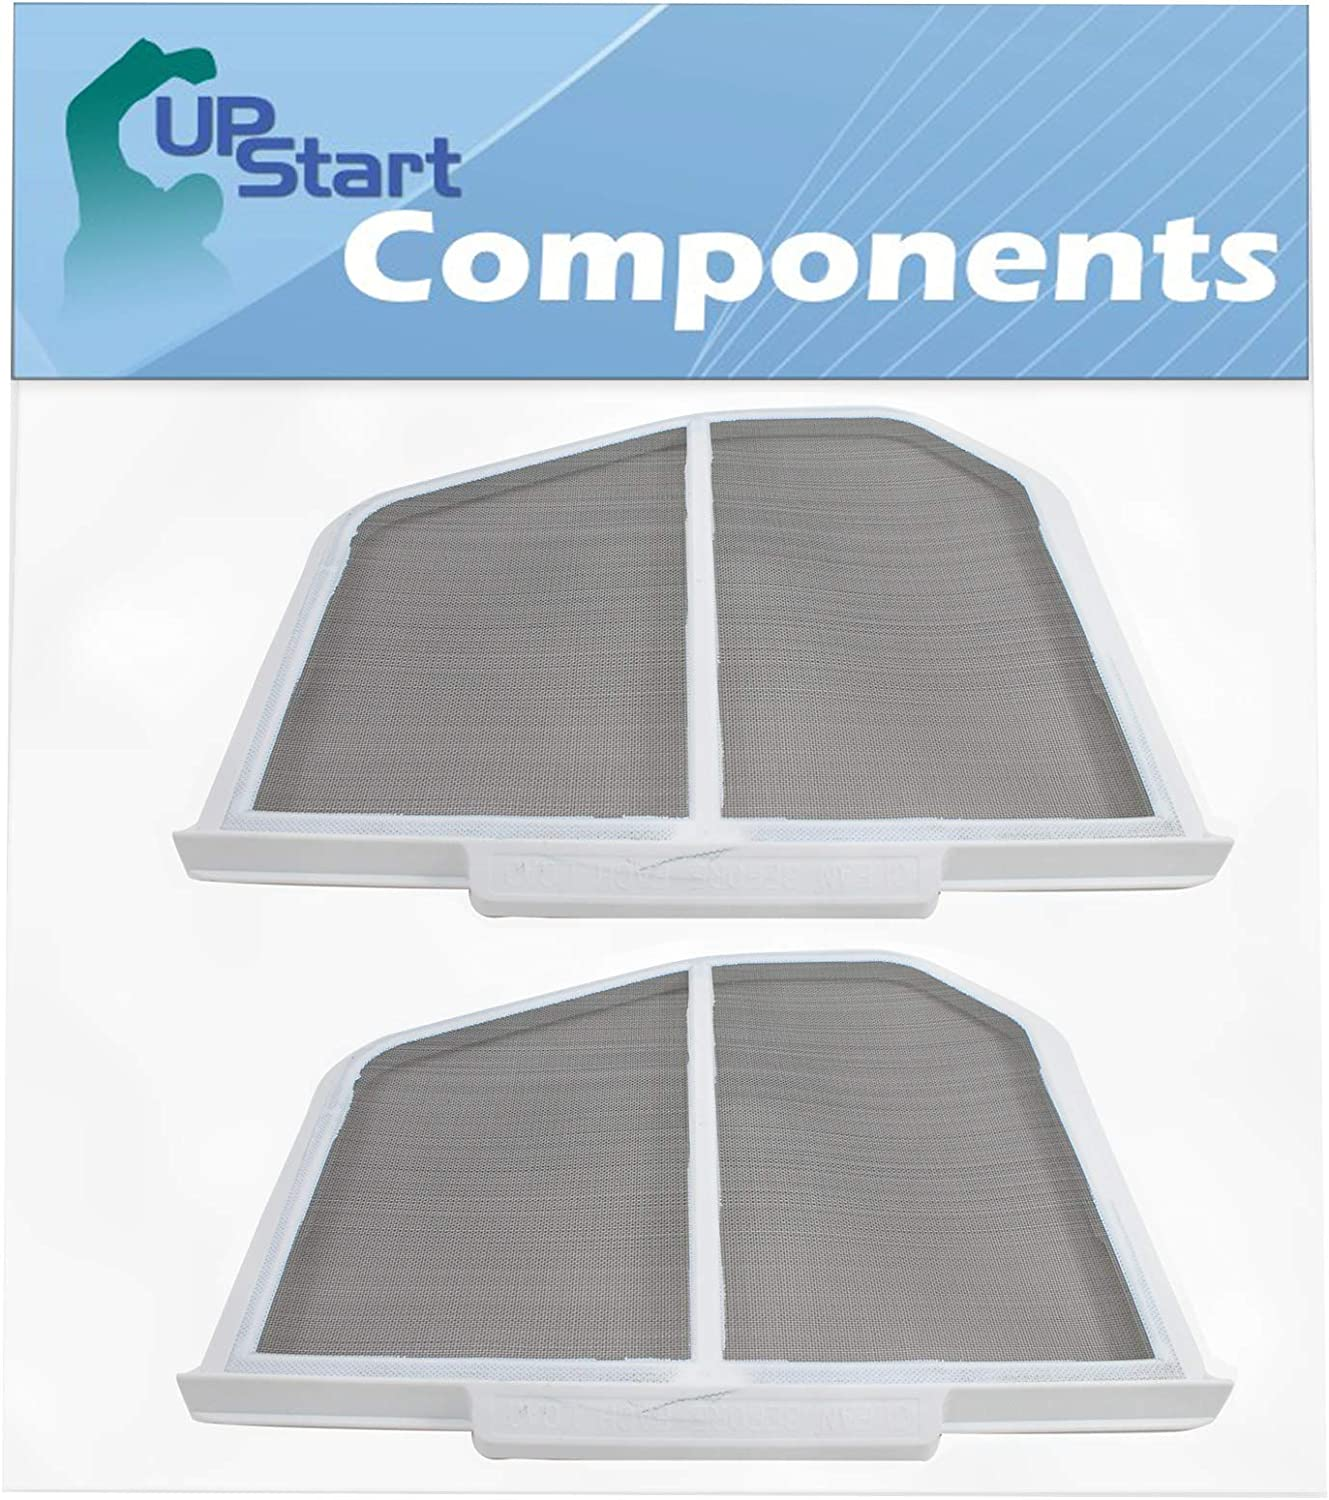 2-Pack W10120998 Dryer Lint Screen Replacement for Maytag MGDE500WJ1 Compatible with 8066170 Lint Screen Filter Catcher